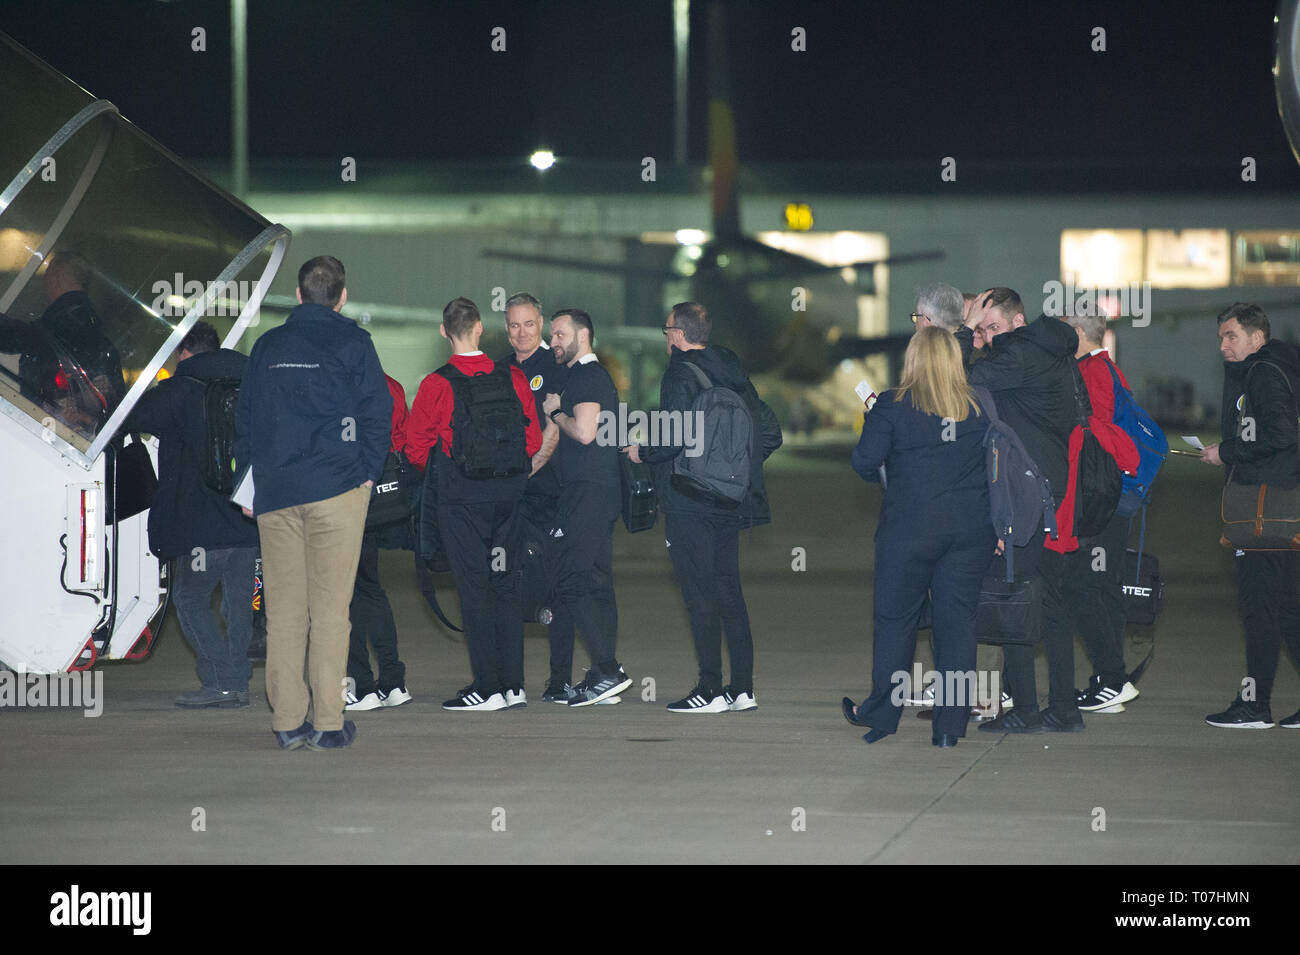 Glasgow, UK. 18 March 2019. Callum Patterson (7th from right) and Peter Grant (extreme right) and the Scotland Football Team seen boarding their luxury jetliner private aircraft in the early hours seen  at Glasgow Airport moments before departing for Kazakhstan to play a game on Wednesday.  The flight was due to take off at 11pm, however due to an unforeseen problem where the pilot had to come out of the flight deck and onto the tarmac and speak with ground crew, the flight eventually took off in the early hours of today. Credit: Colin Fisher/Alamy Live News - Stock Image